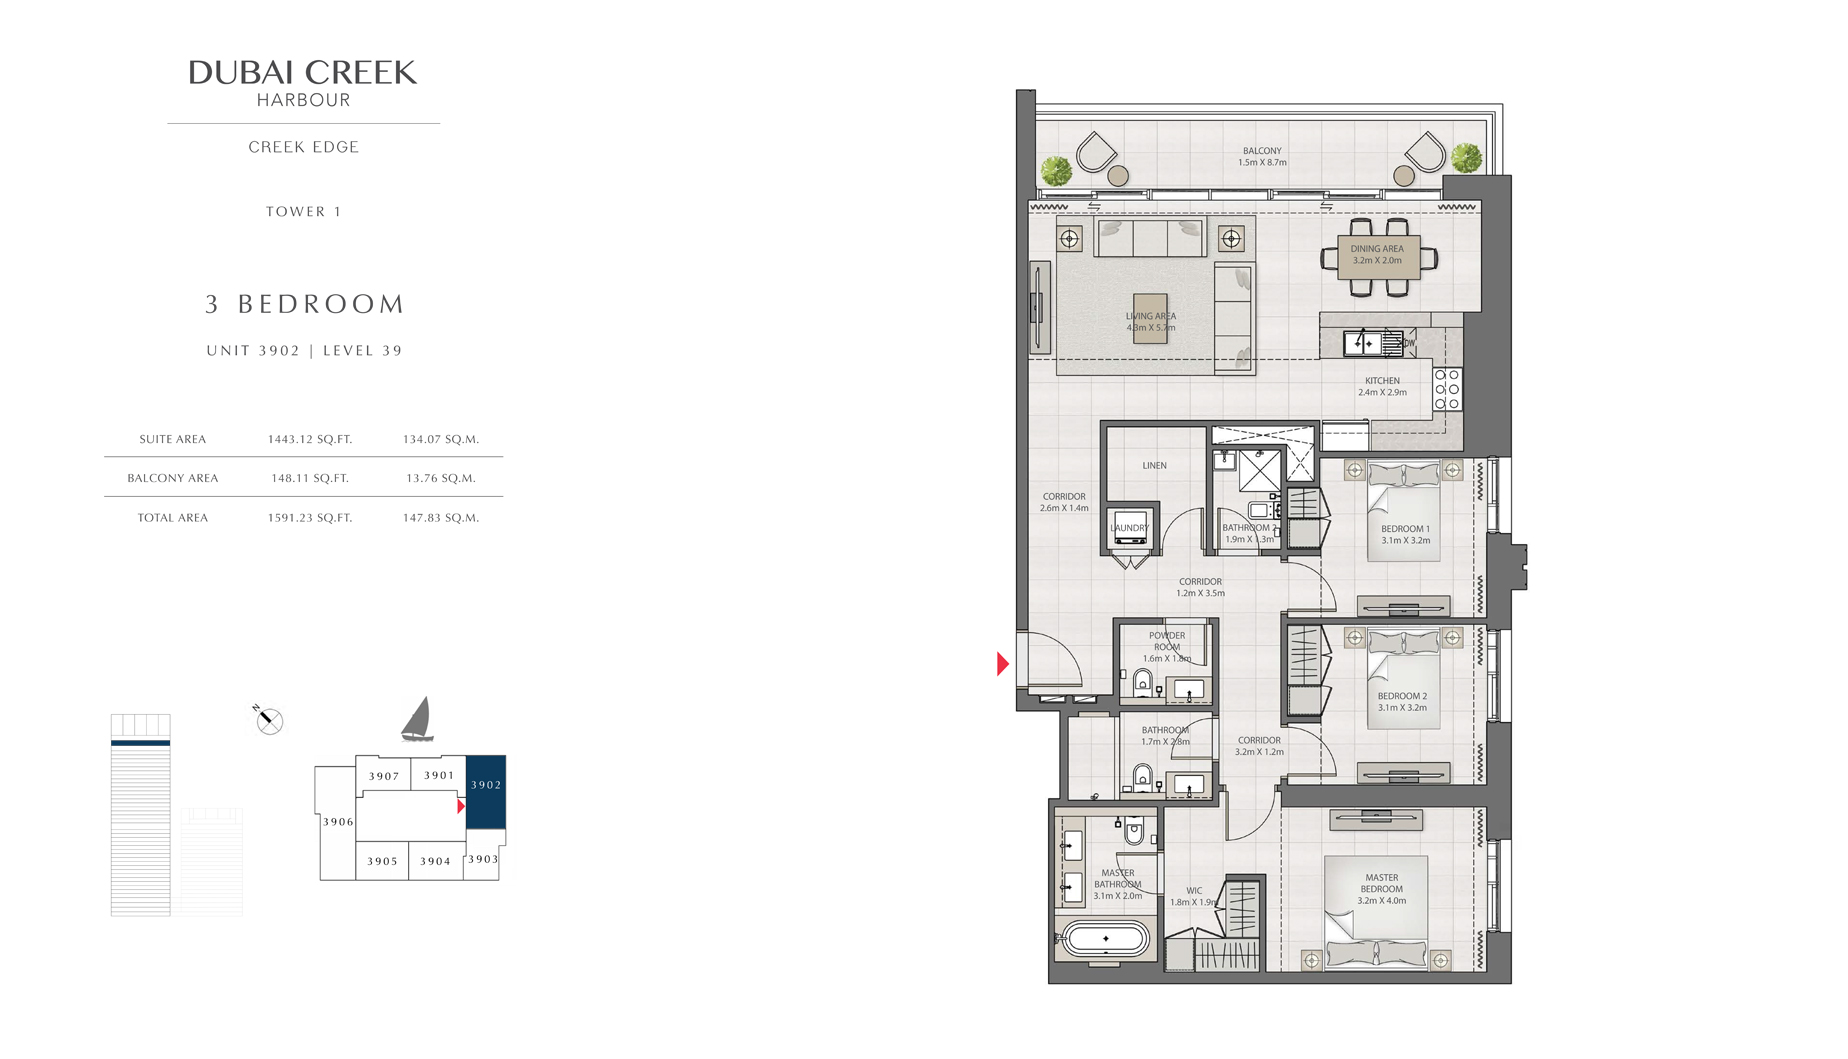 3 Bedroom Tower 1 Unit 3902 Level 39 Size 1591 sq.ft